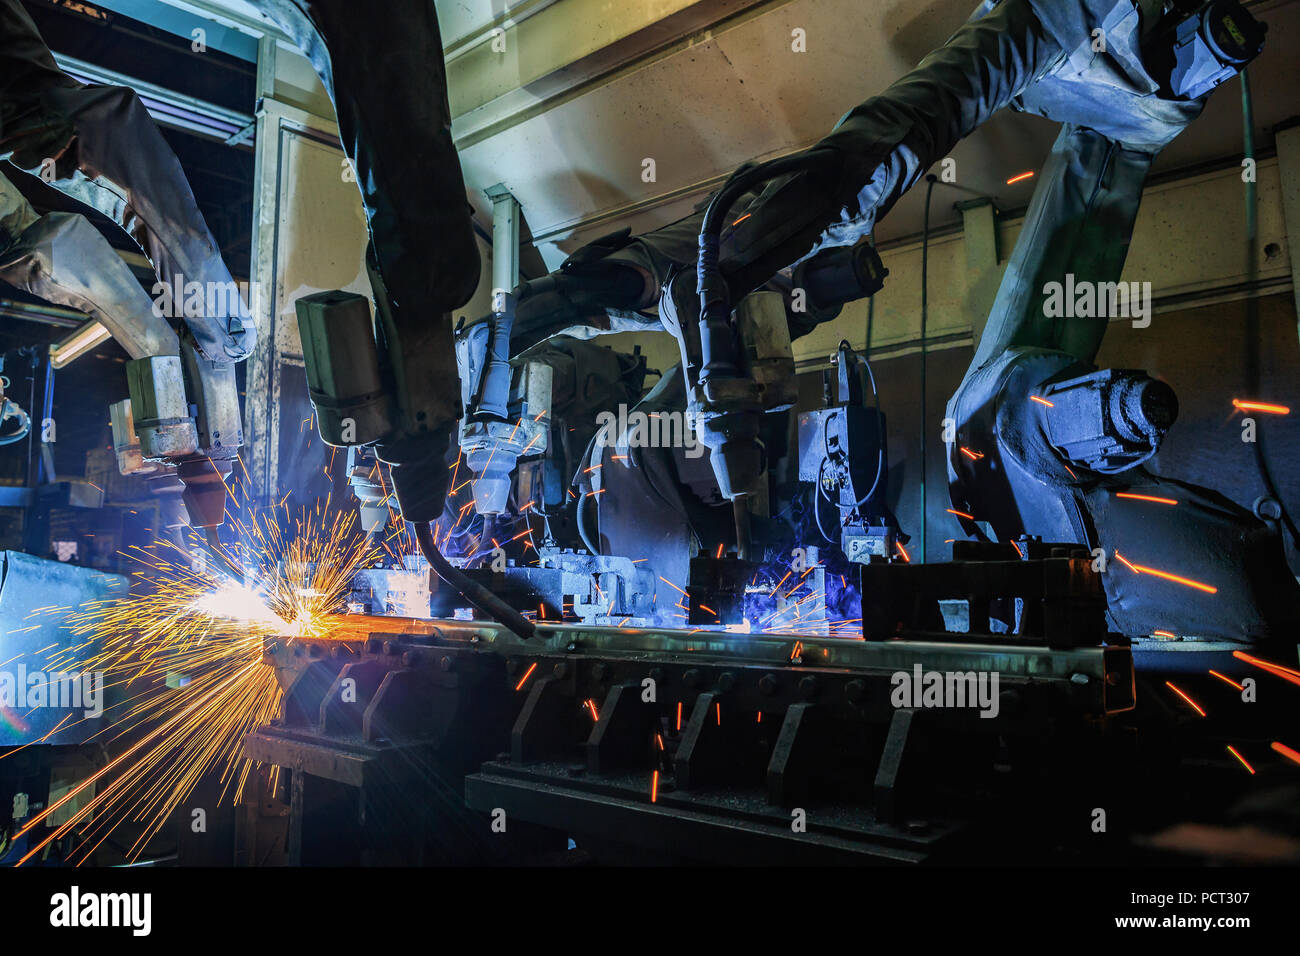 Robot are welding metal part - Stock Image